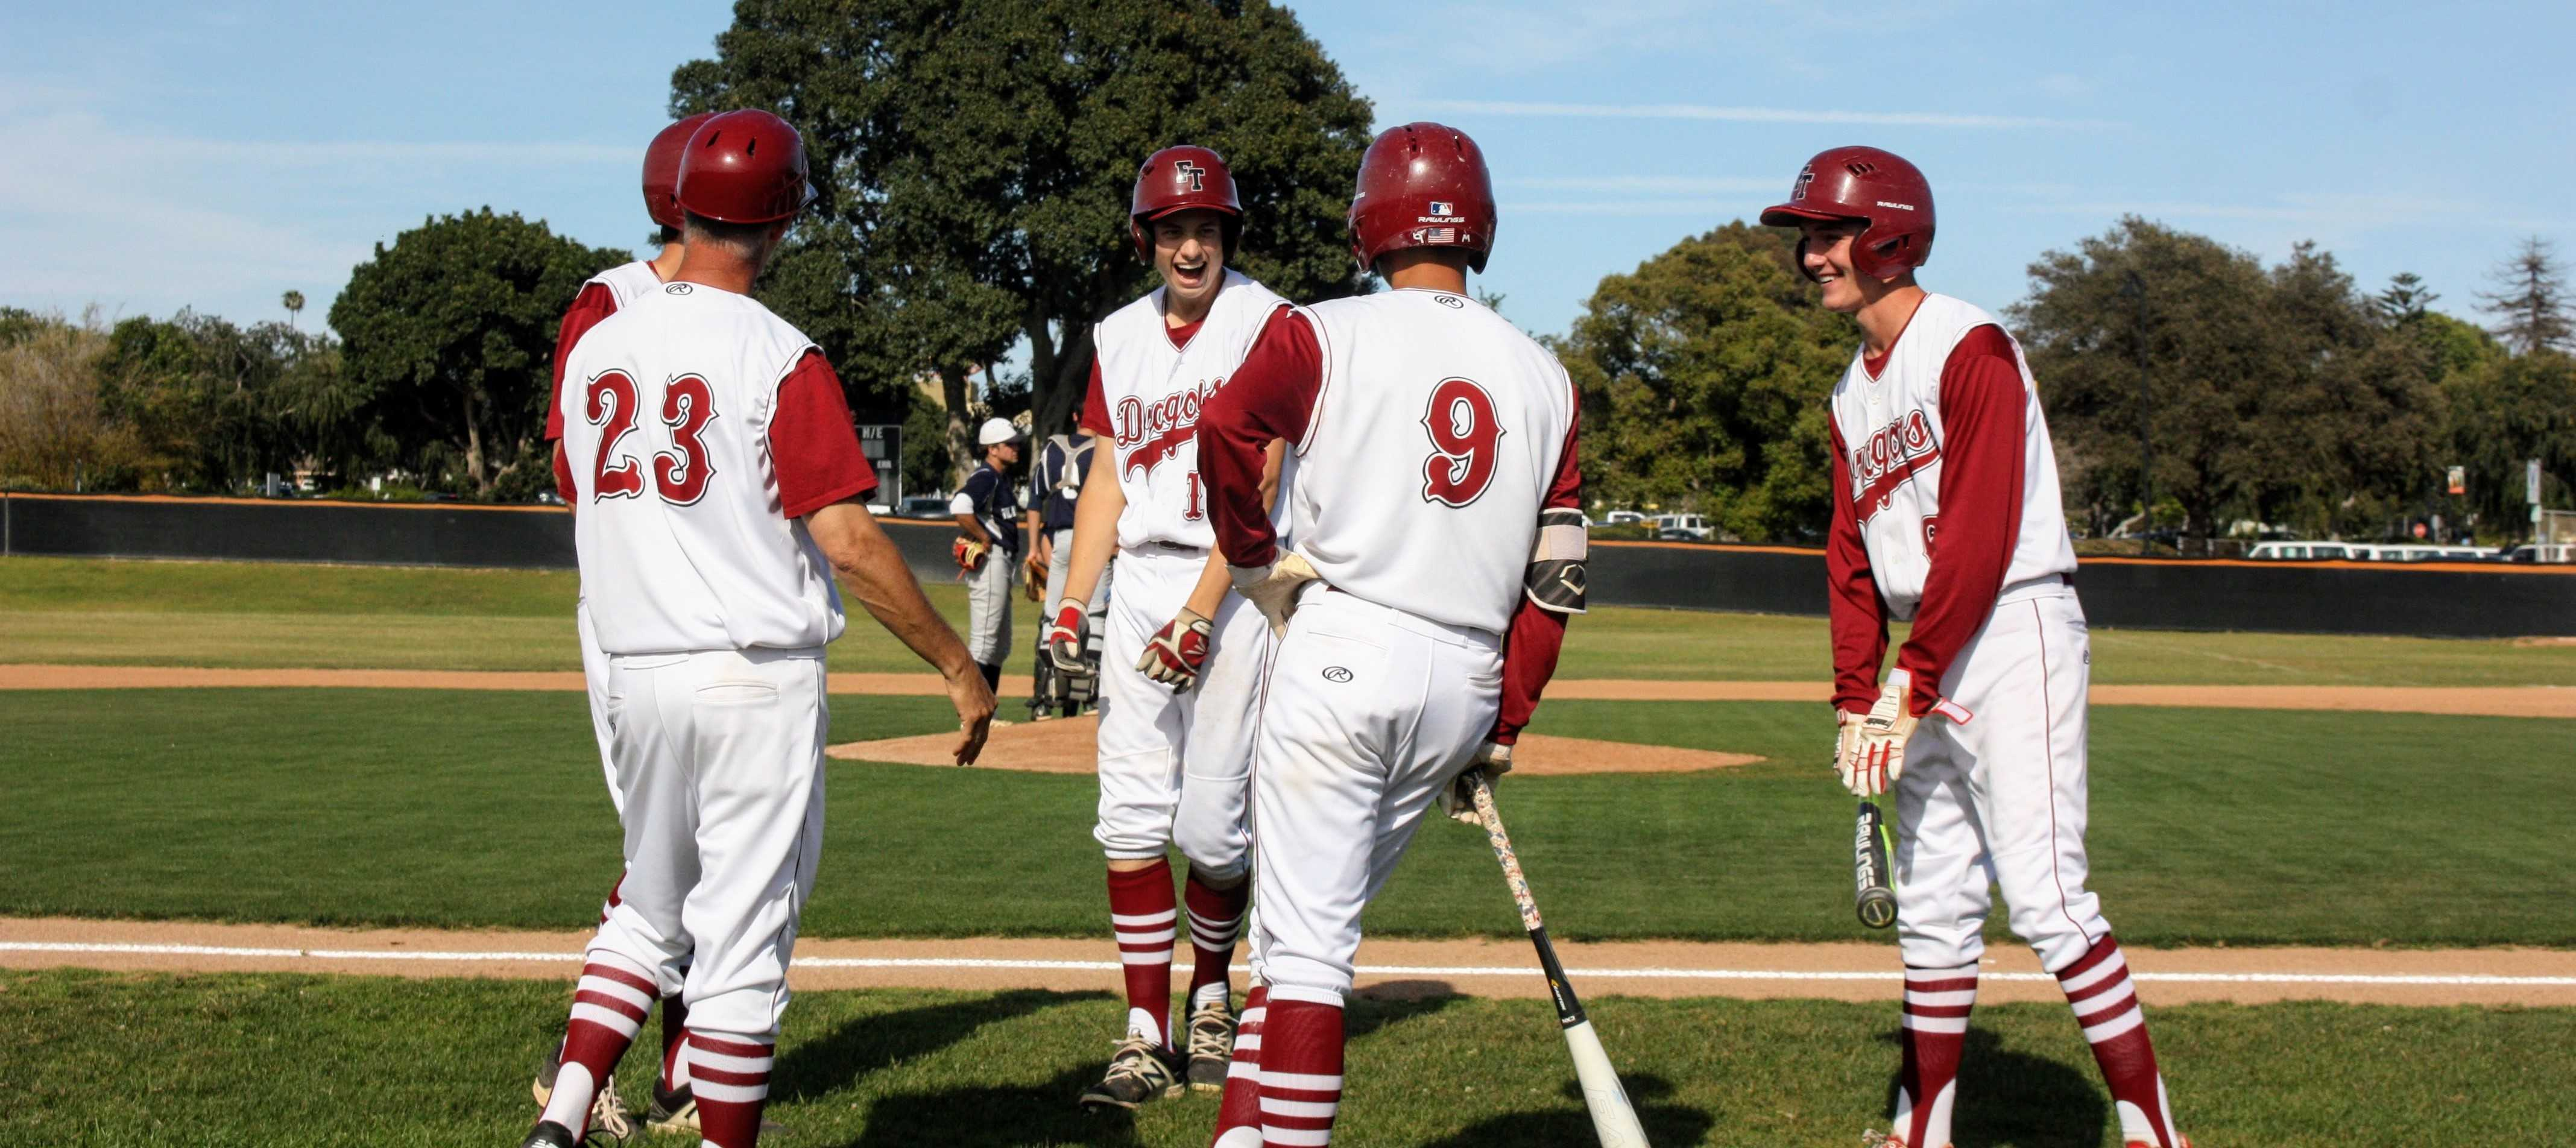 Karl Roth '18 and his teammates celebrate his home run. Credit: Gabrialla Cockerell / The Foothill Dragon Press